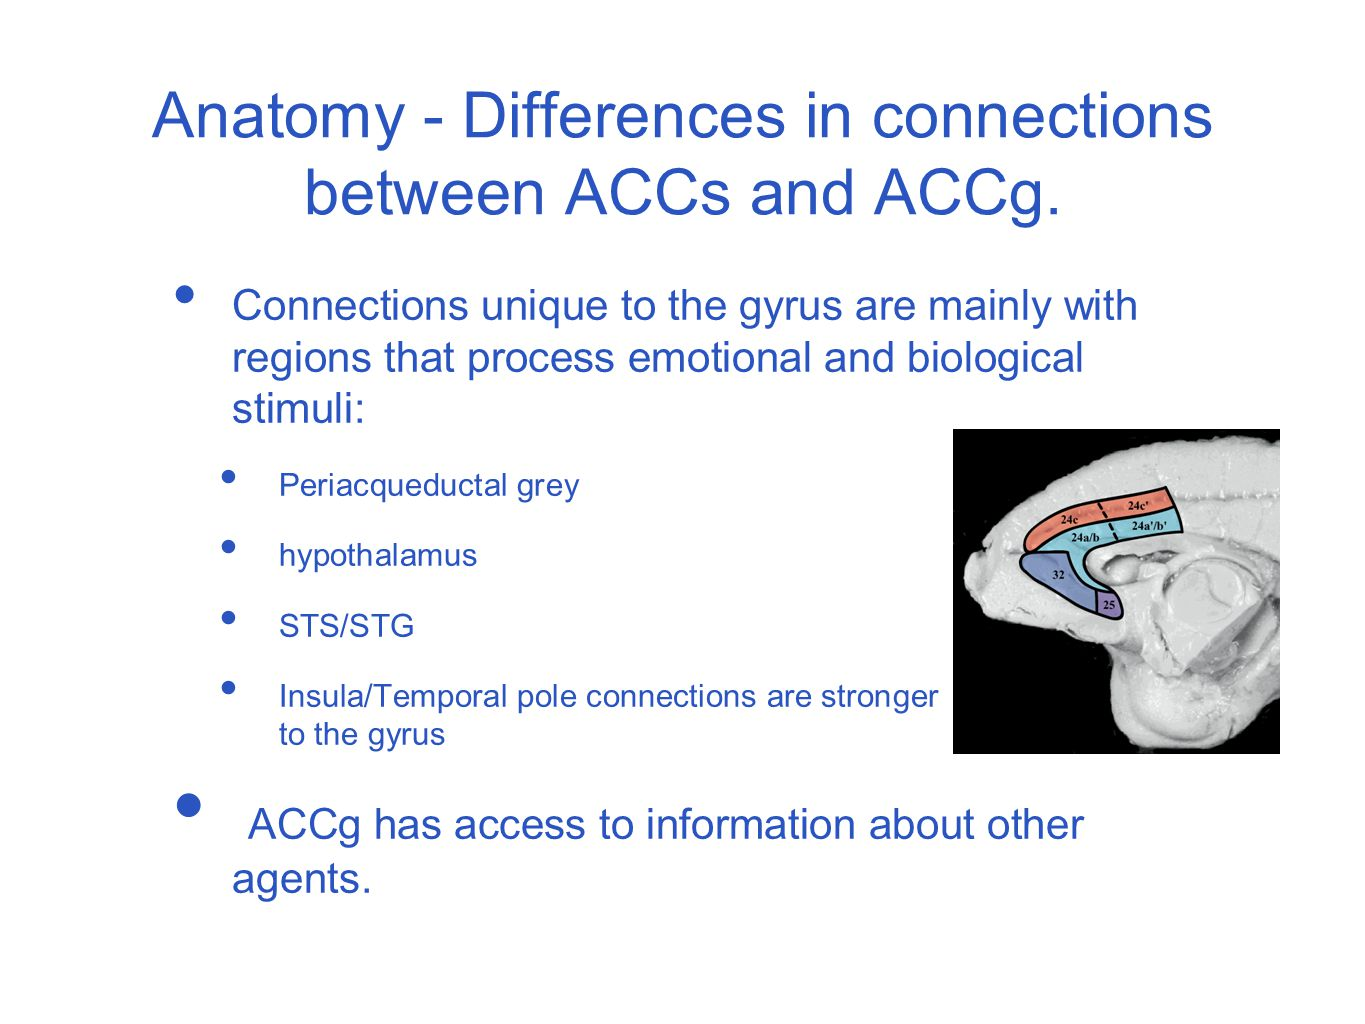 Anatomy - shared connections between ACCs and ACCg.